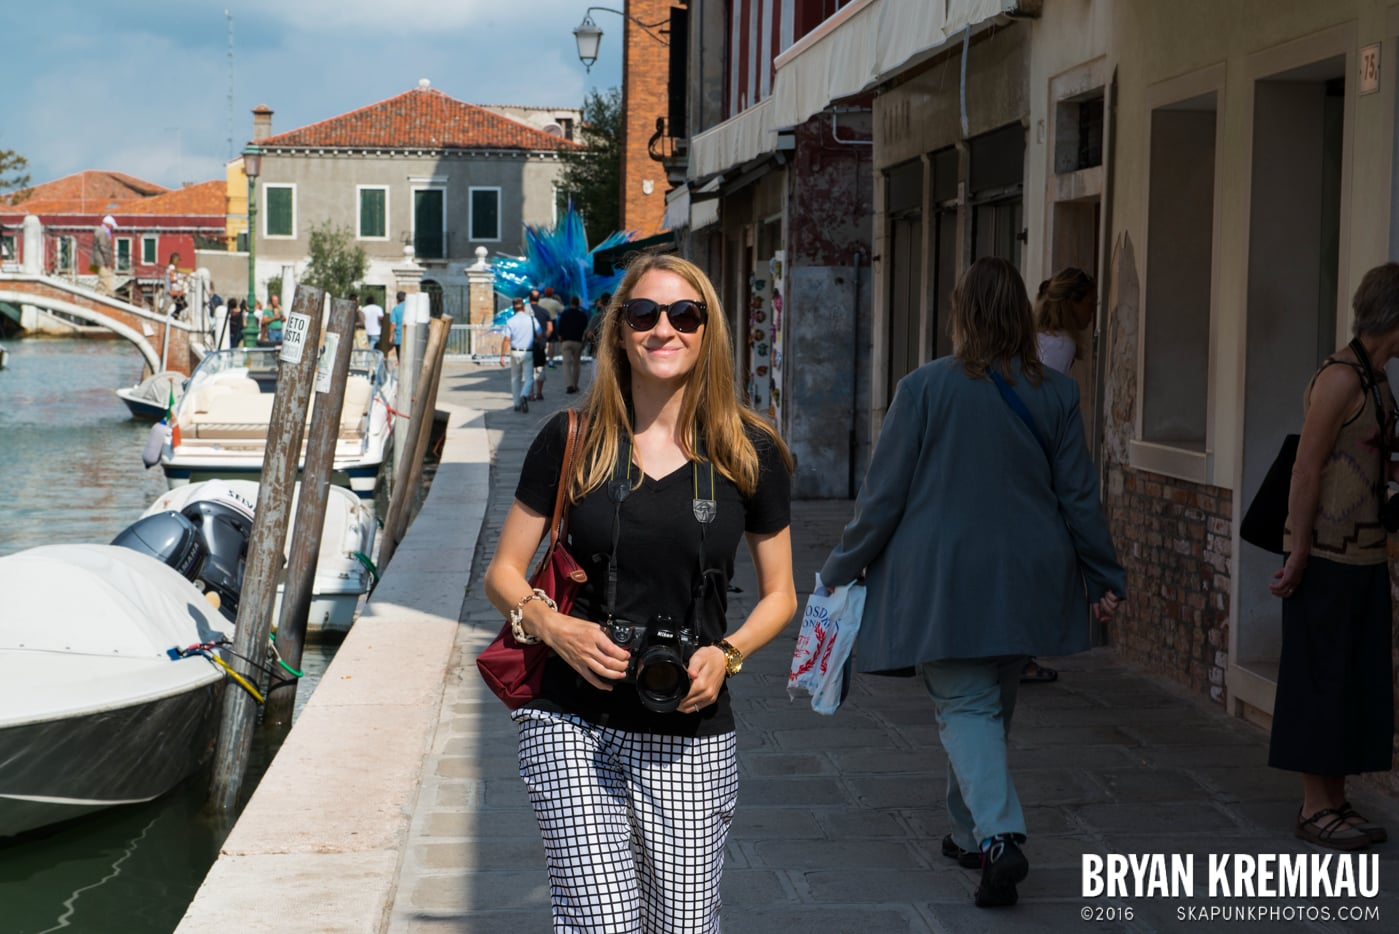 Italy Vacation - Day 6: Murano, Burano, Venice - 9.14.13 (75)